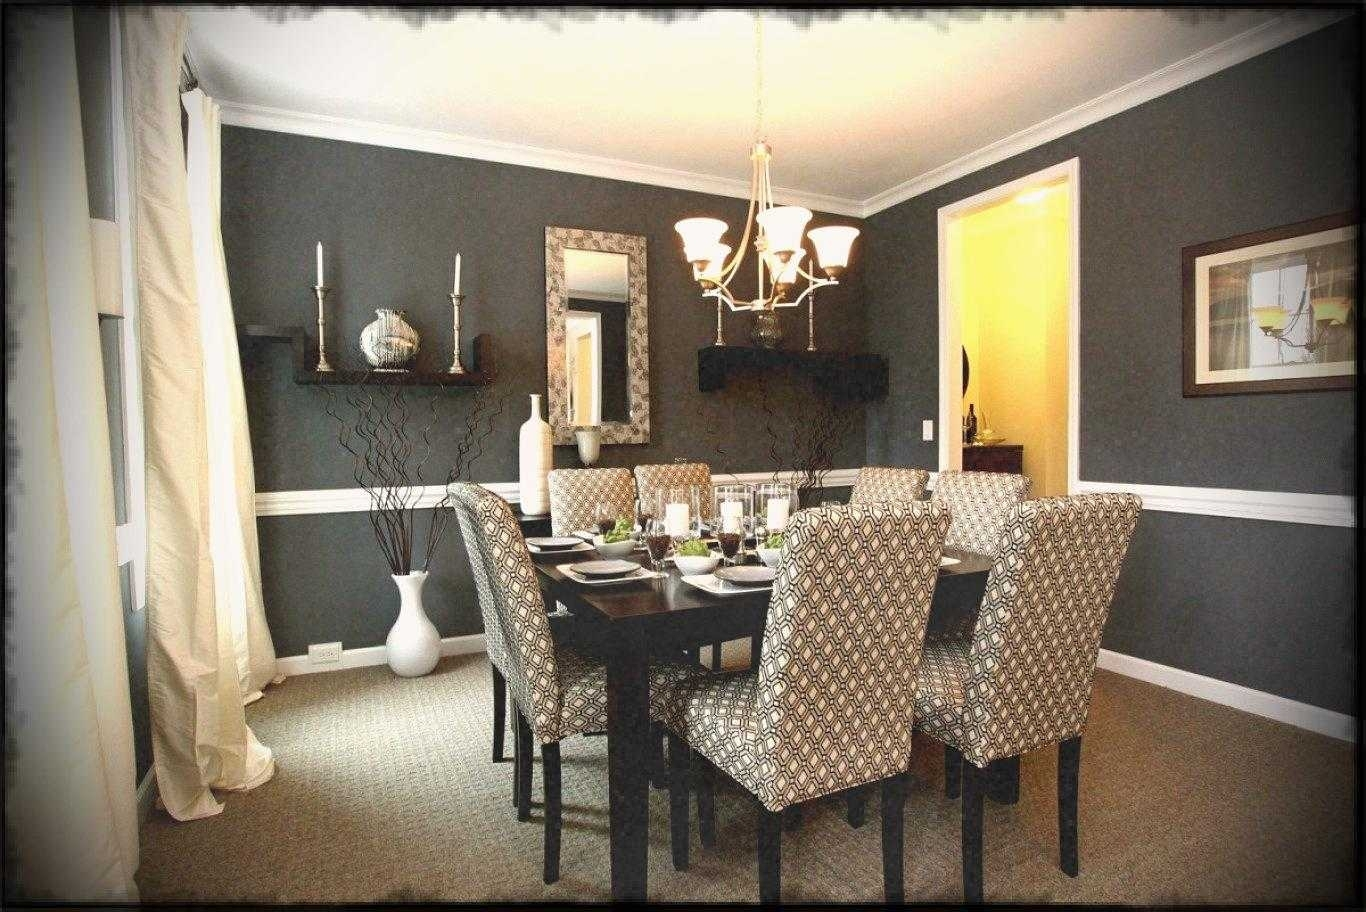 Stunning Modern Wall Art For Dining Room Collection Also Islamic With Chicago Wall Art (View 20 of 20)